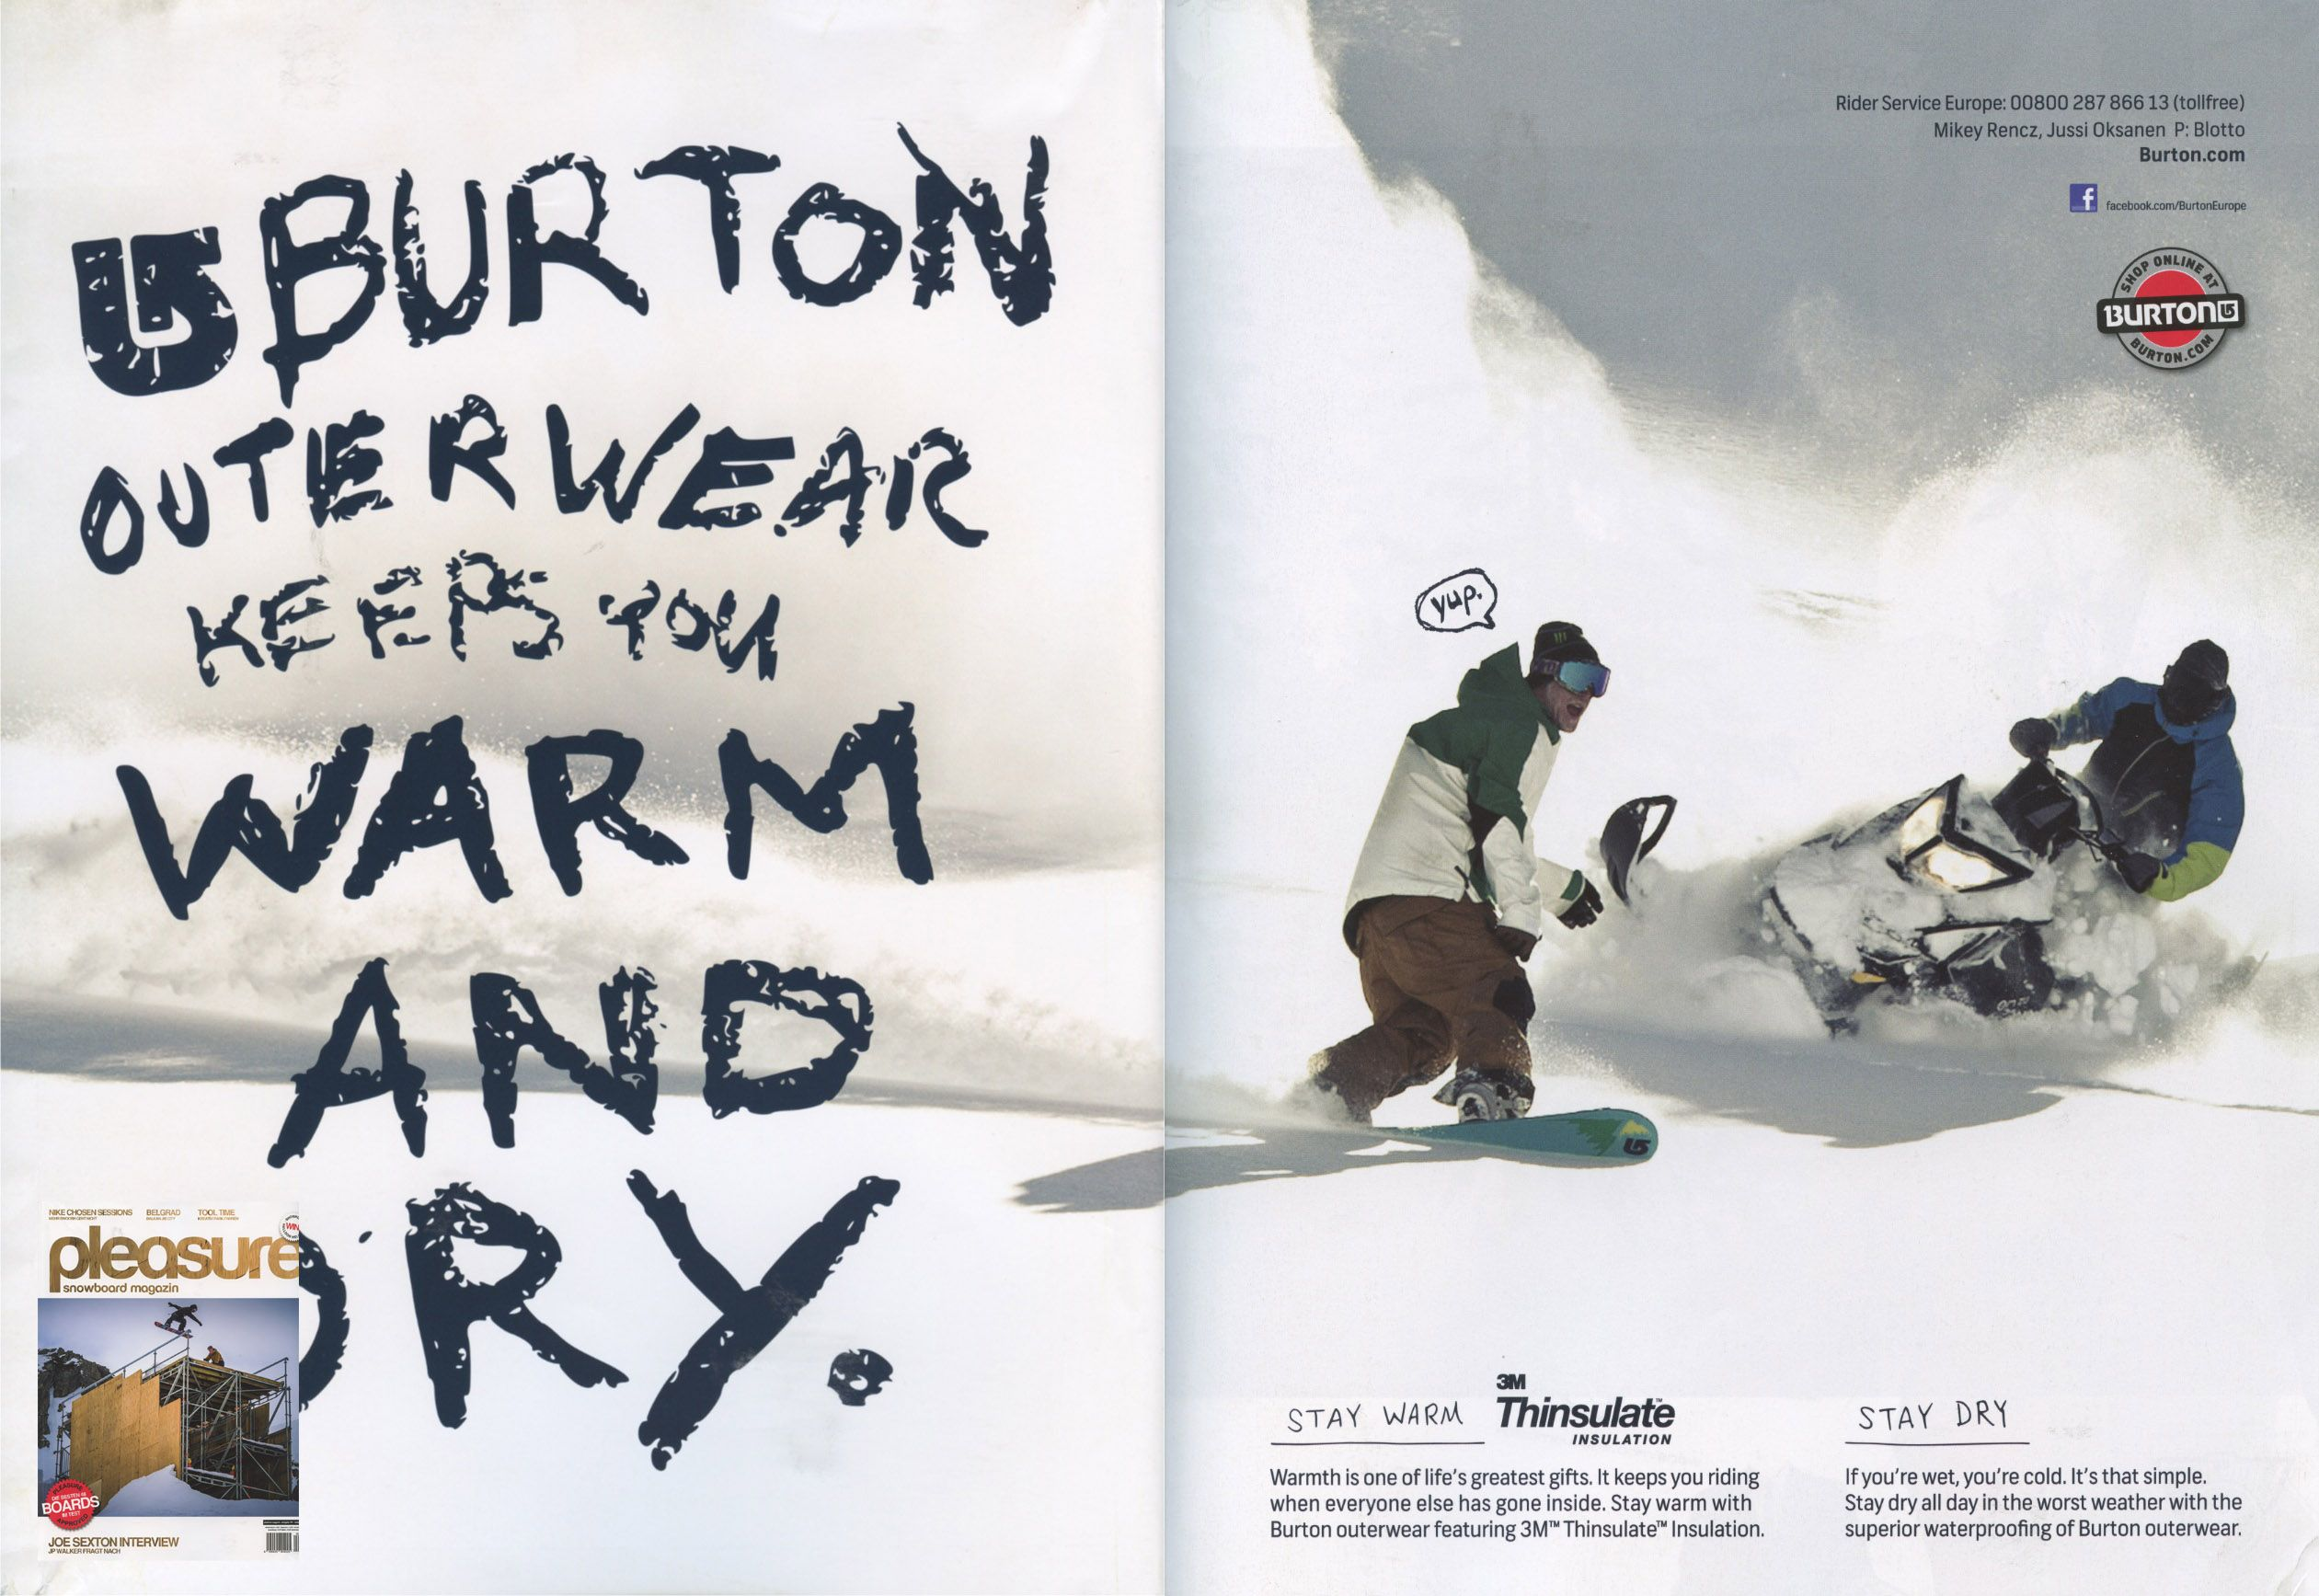 Pleasure - German Austrian Magazine - Mickey Rencz - Snowboard Team - Aug12